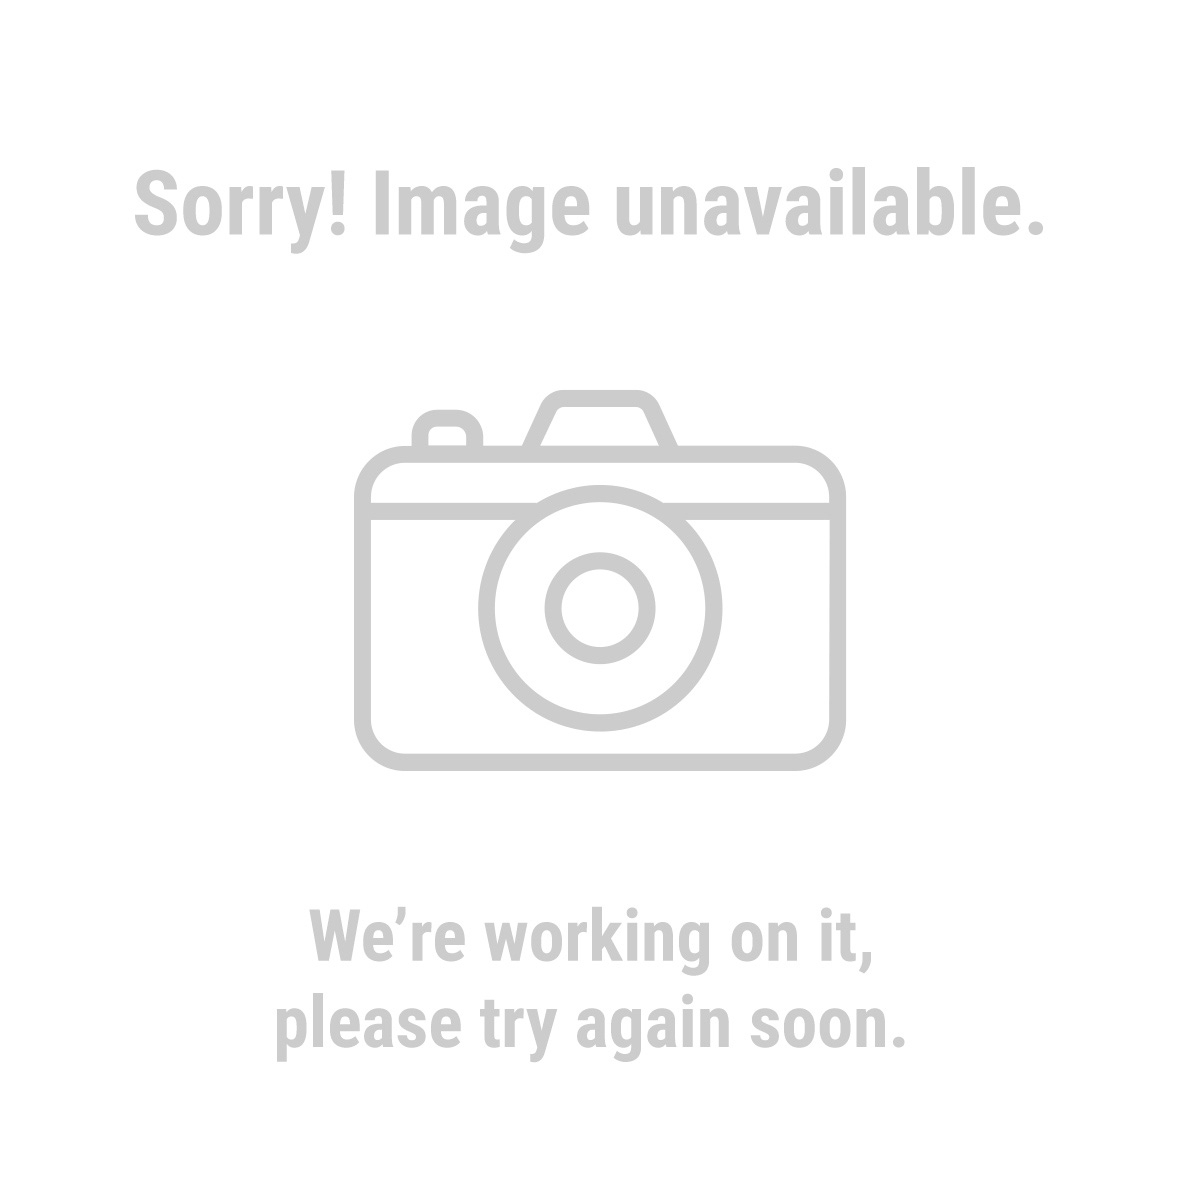 HARDY 61743 9 mil Nitrile Powder-Free Gloves 50 Pc X-Large